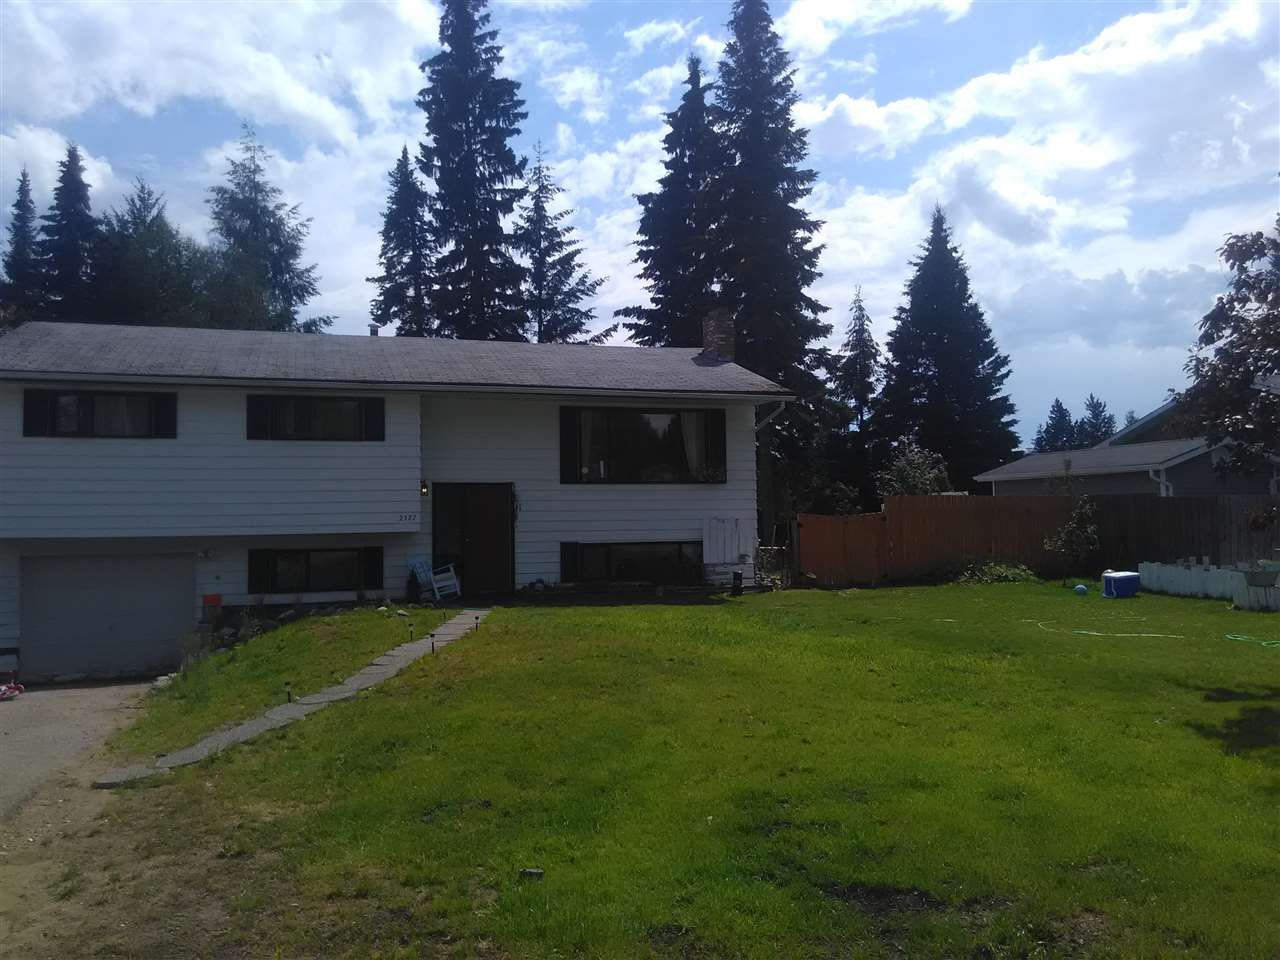 Main Photo: 2177 SUSSEX Lane in Prince George: Hart Highlands House for sale (PG City North (Zone 73))  : MLS®# R2269572